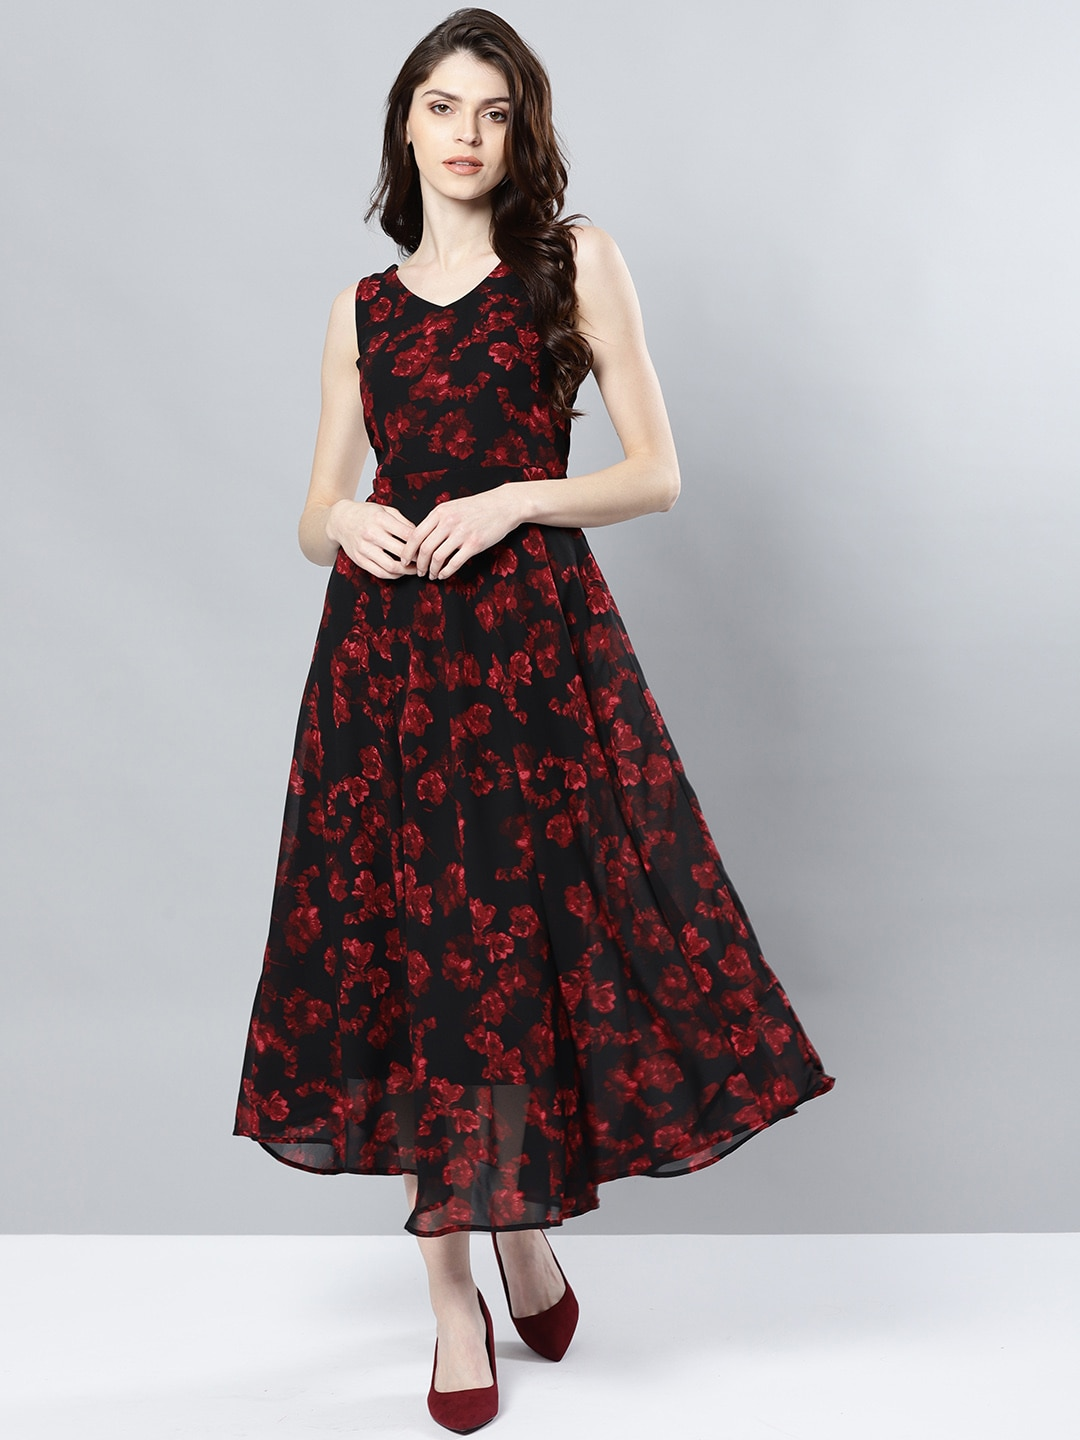 Floral Dresses - Buy Floral Print Dress Online in India  8b4927576233